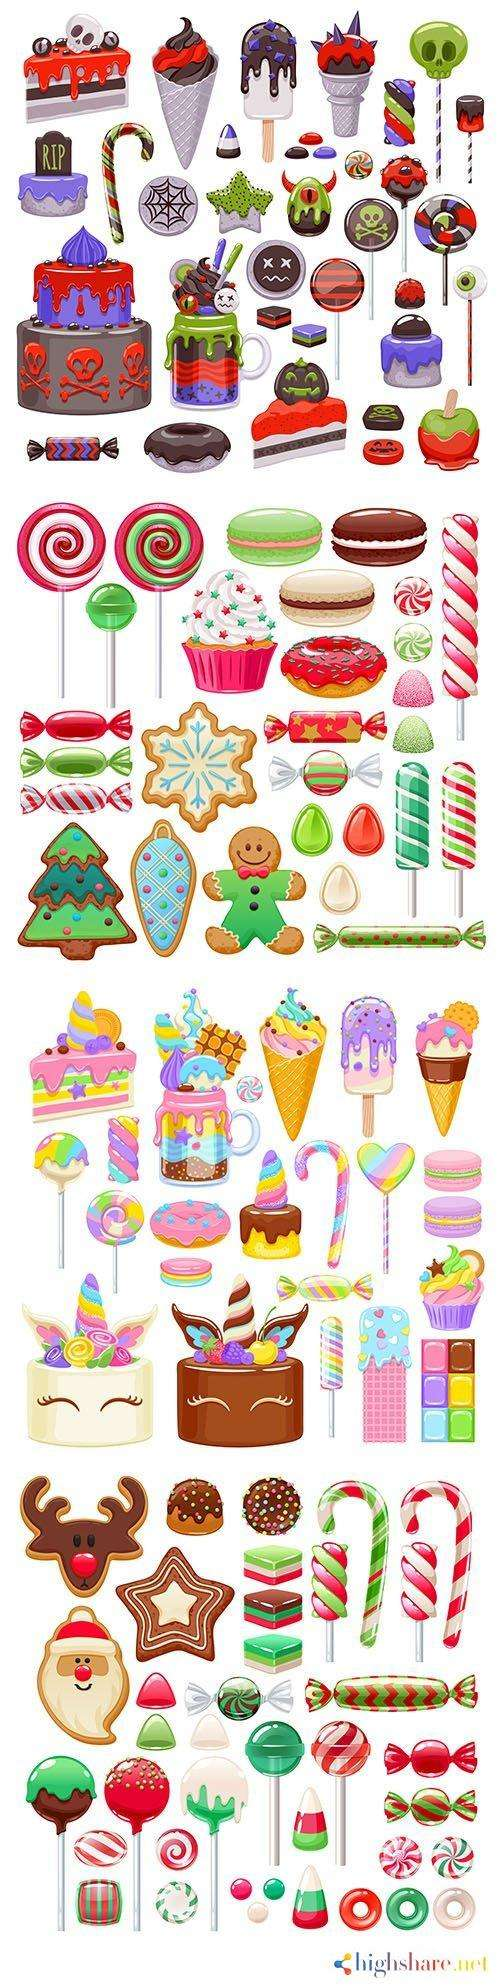 festive sweets assorted from candy and cookies 5f41ffcb810e1 - Festive sweets assorted from candy and cookies